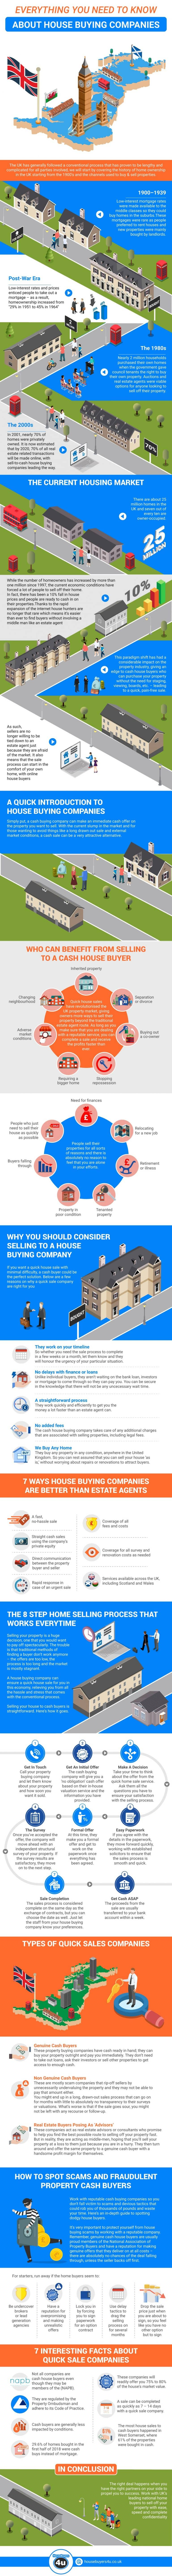 Everything You Need to Know About House Buying Companies